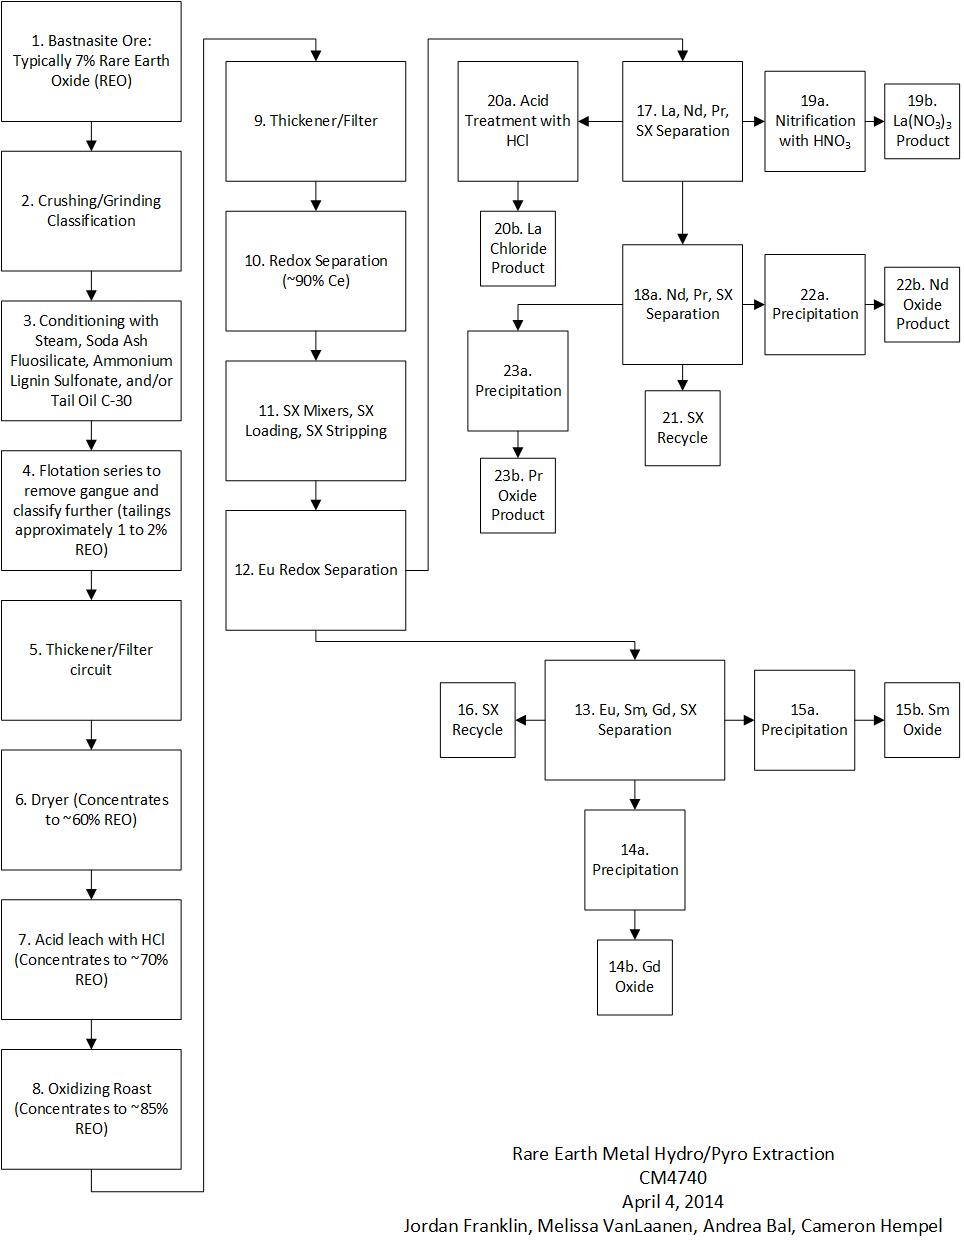 Process Flow Charts In Powerpoint: Pyrometallury rare earth metal extraction from bastnastie ore ,Chart